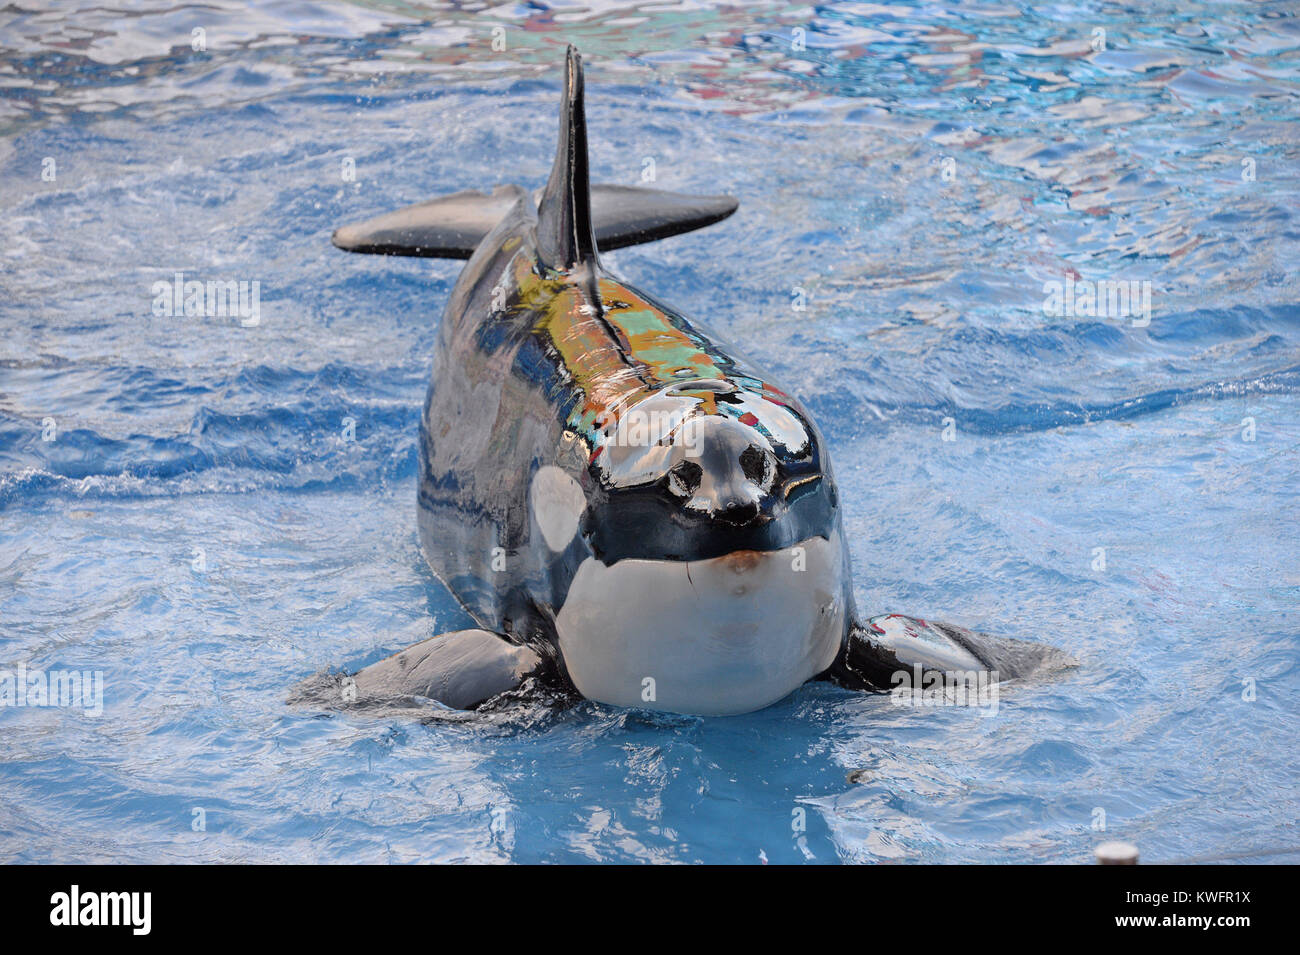 ORLANDO, FL - AUGUST 15: SeaWorld has announced a new 10 million-gallon killer whale environment in San Diego, nearly - Stock Image